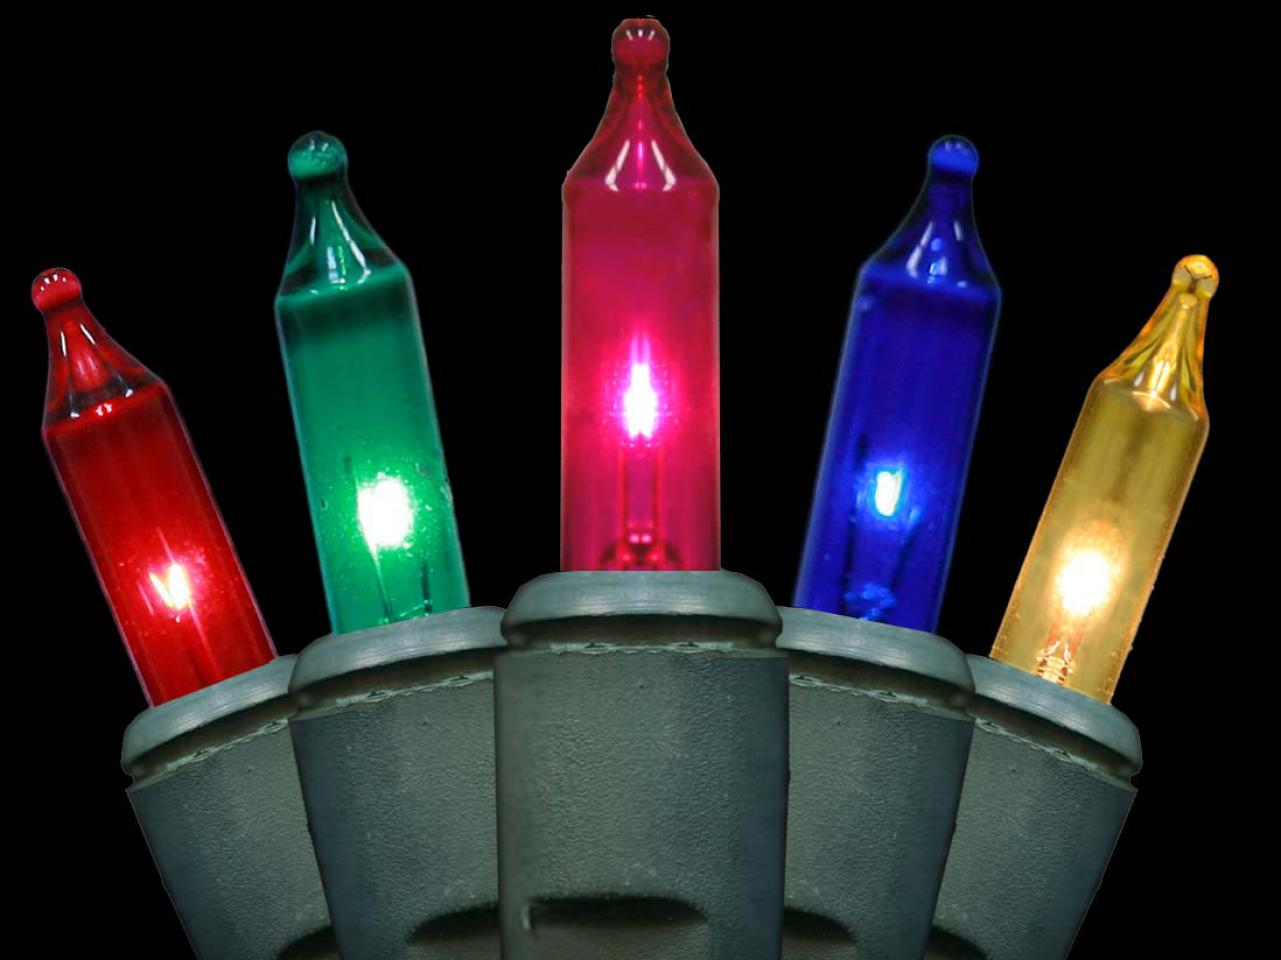 Christmas Colored Light Bulbs With Buyers Guide For The Best Outdoor Lighting DIY